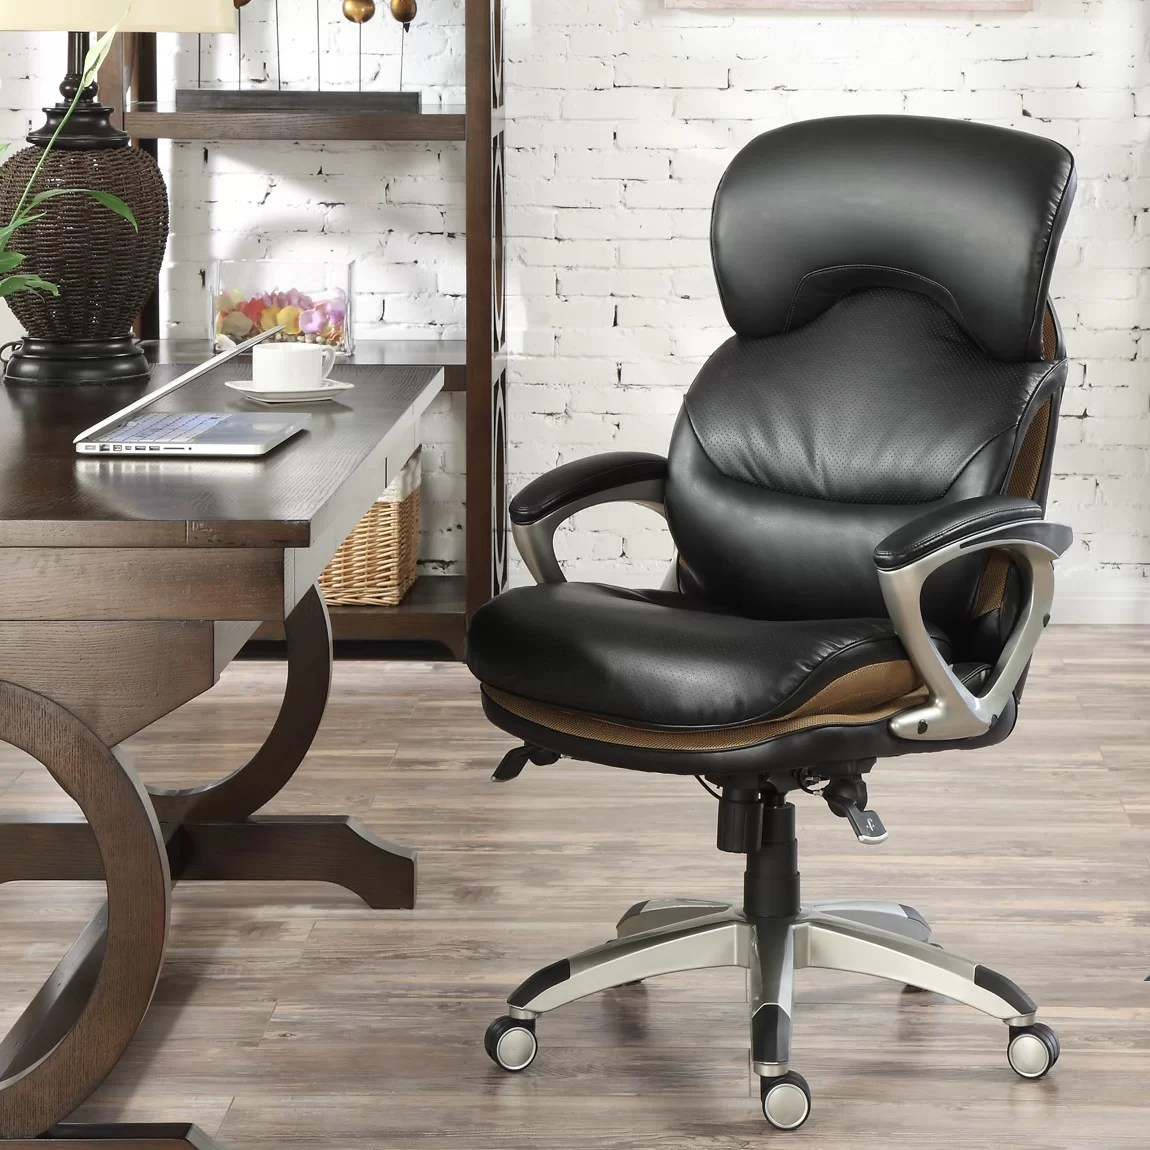 serta at home airtm health and wellness executive office chair. amazoncom serta back in motion health and wellness executive at home airtm office chair